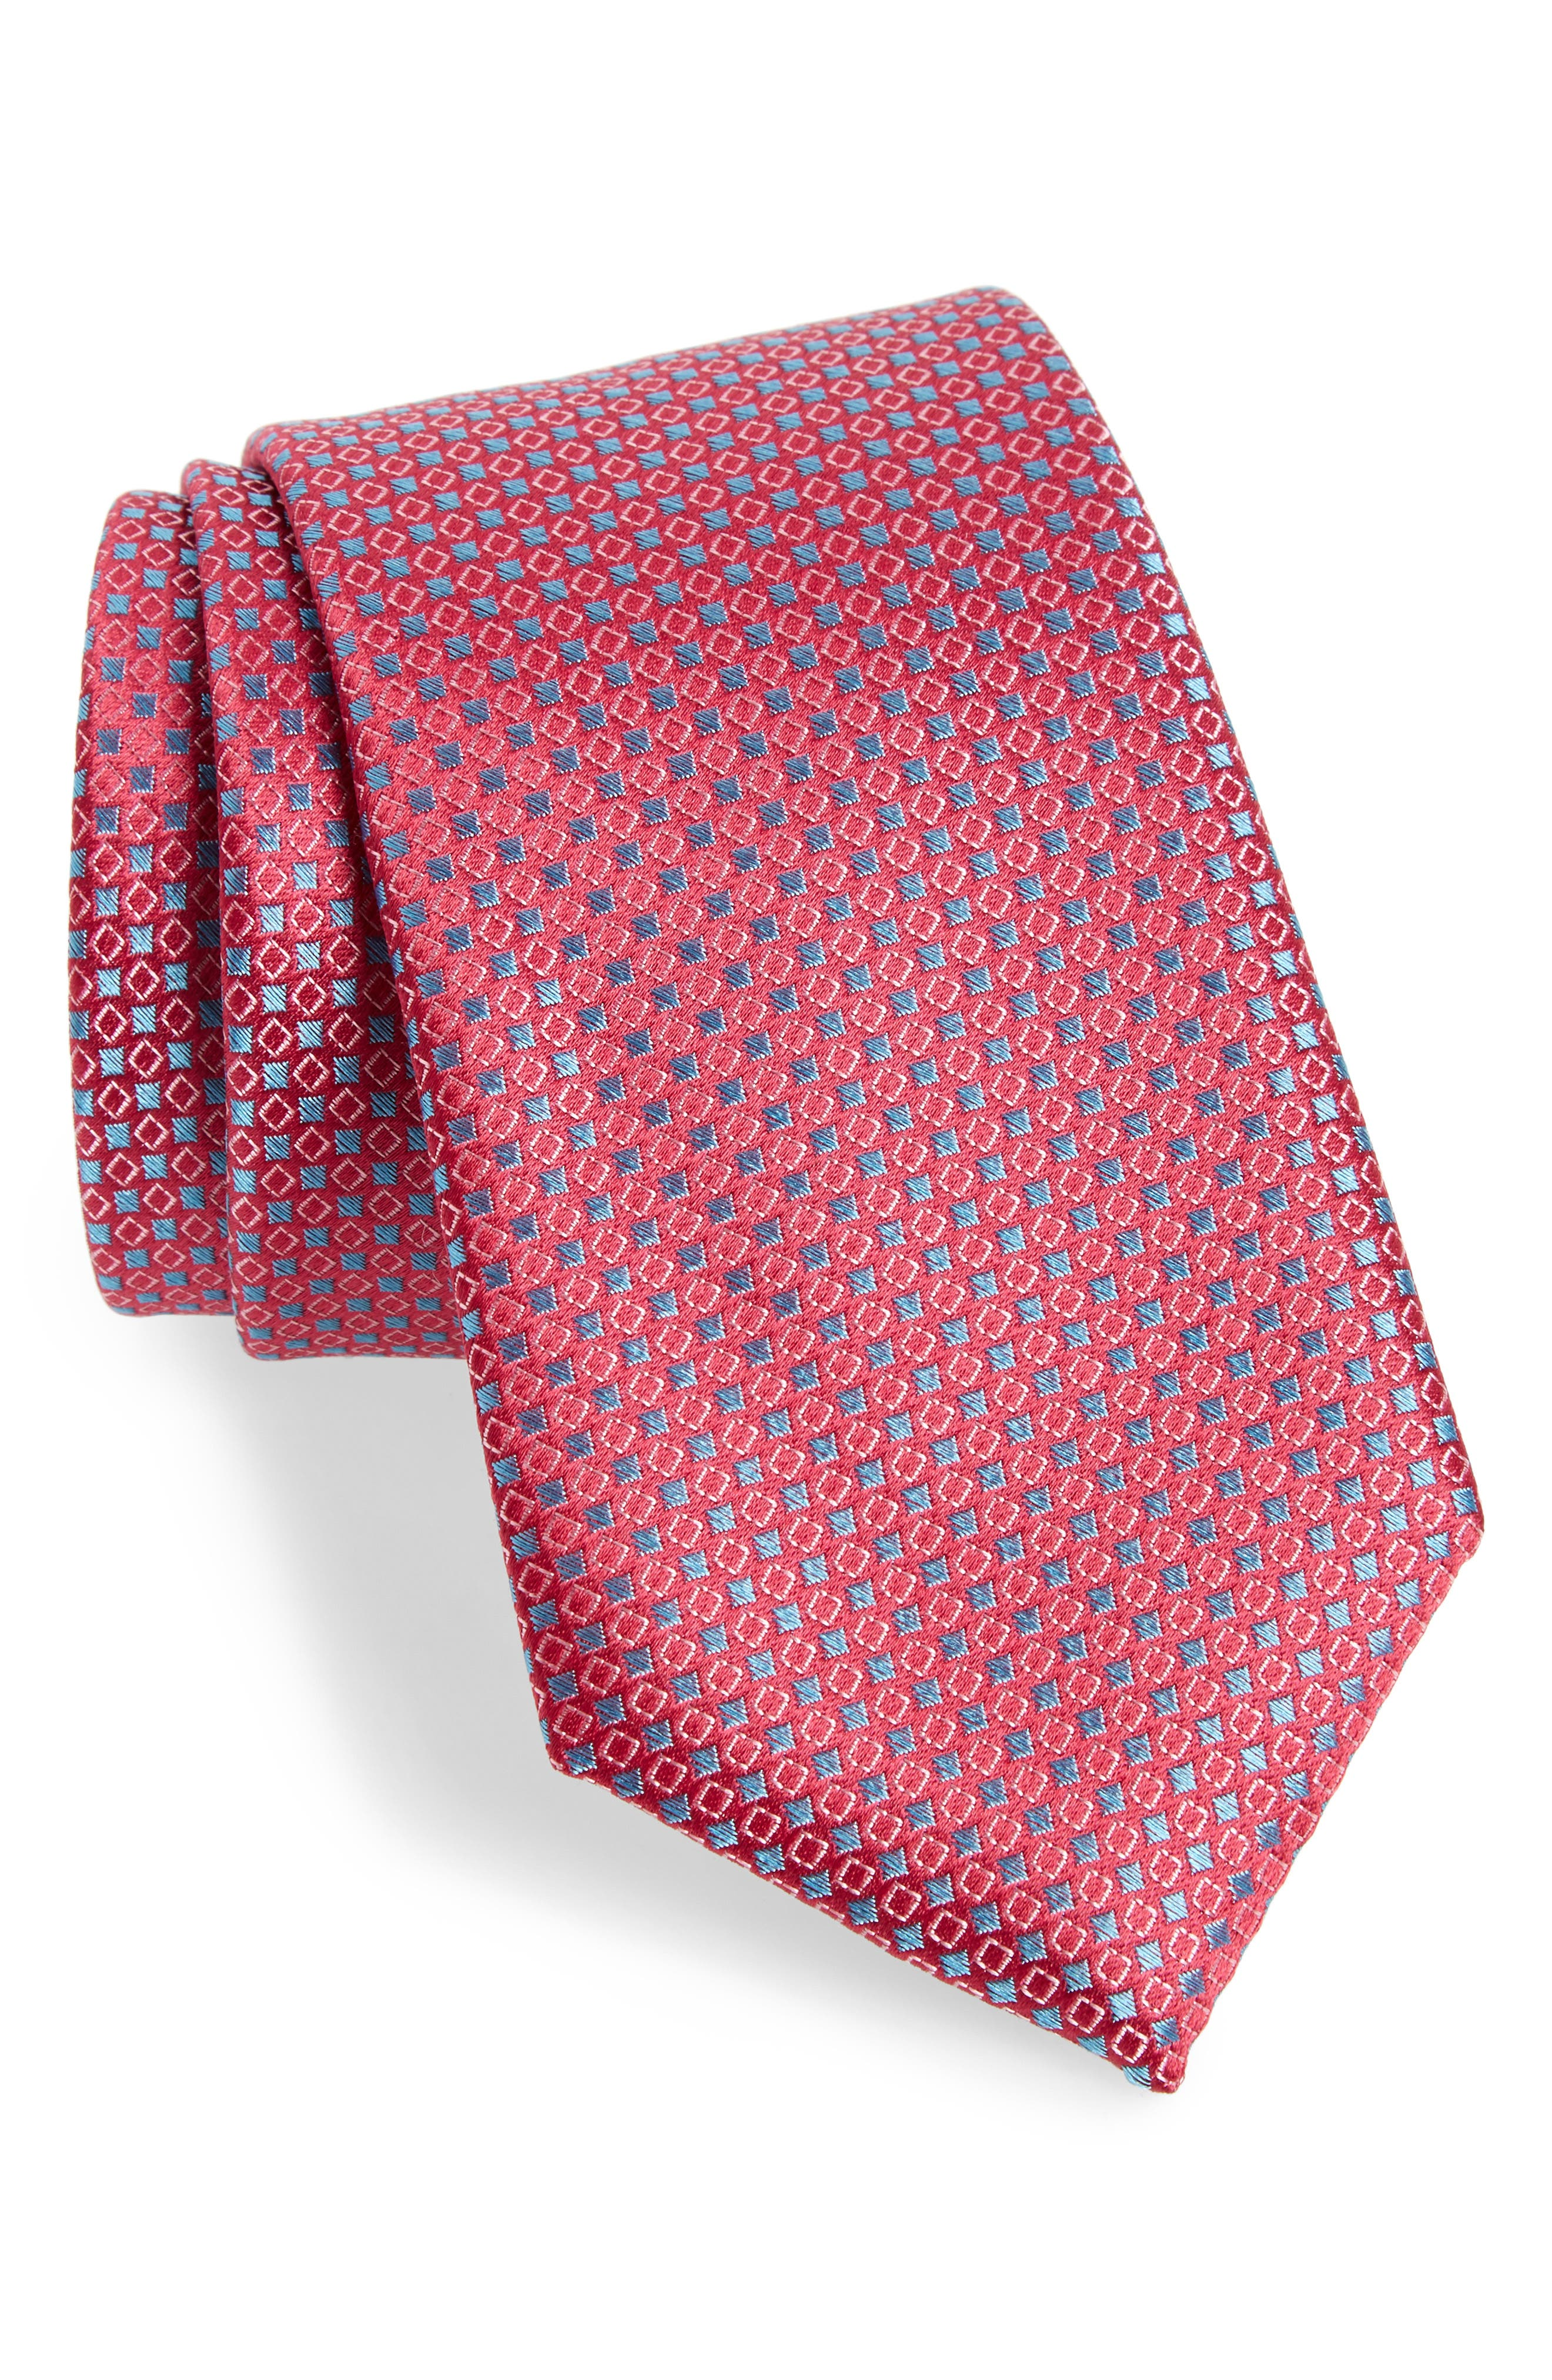 Main Image - Nordstrom Men's Shop Chad Microdot Silk Tie